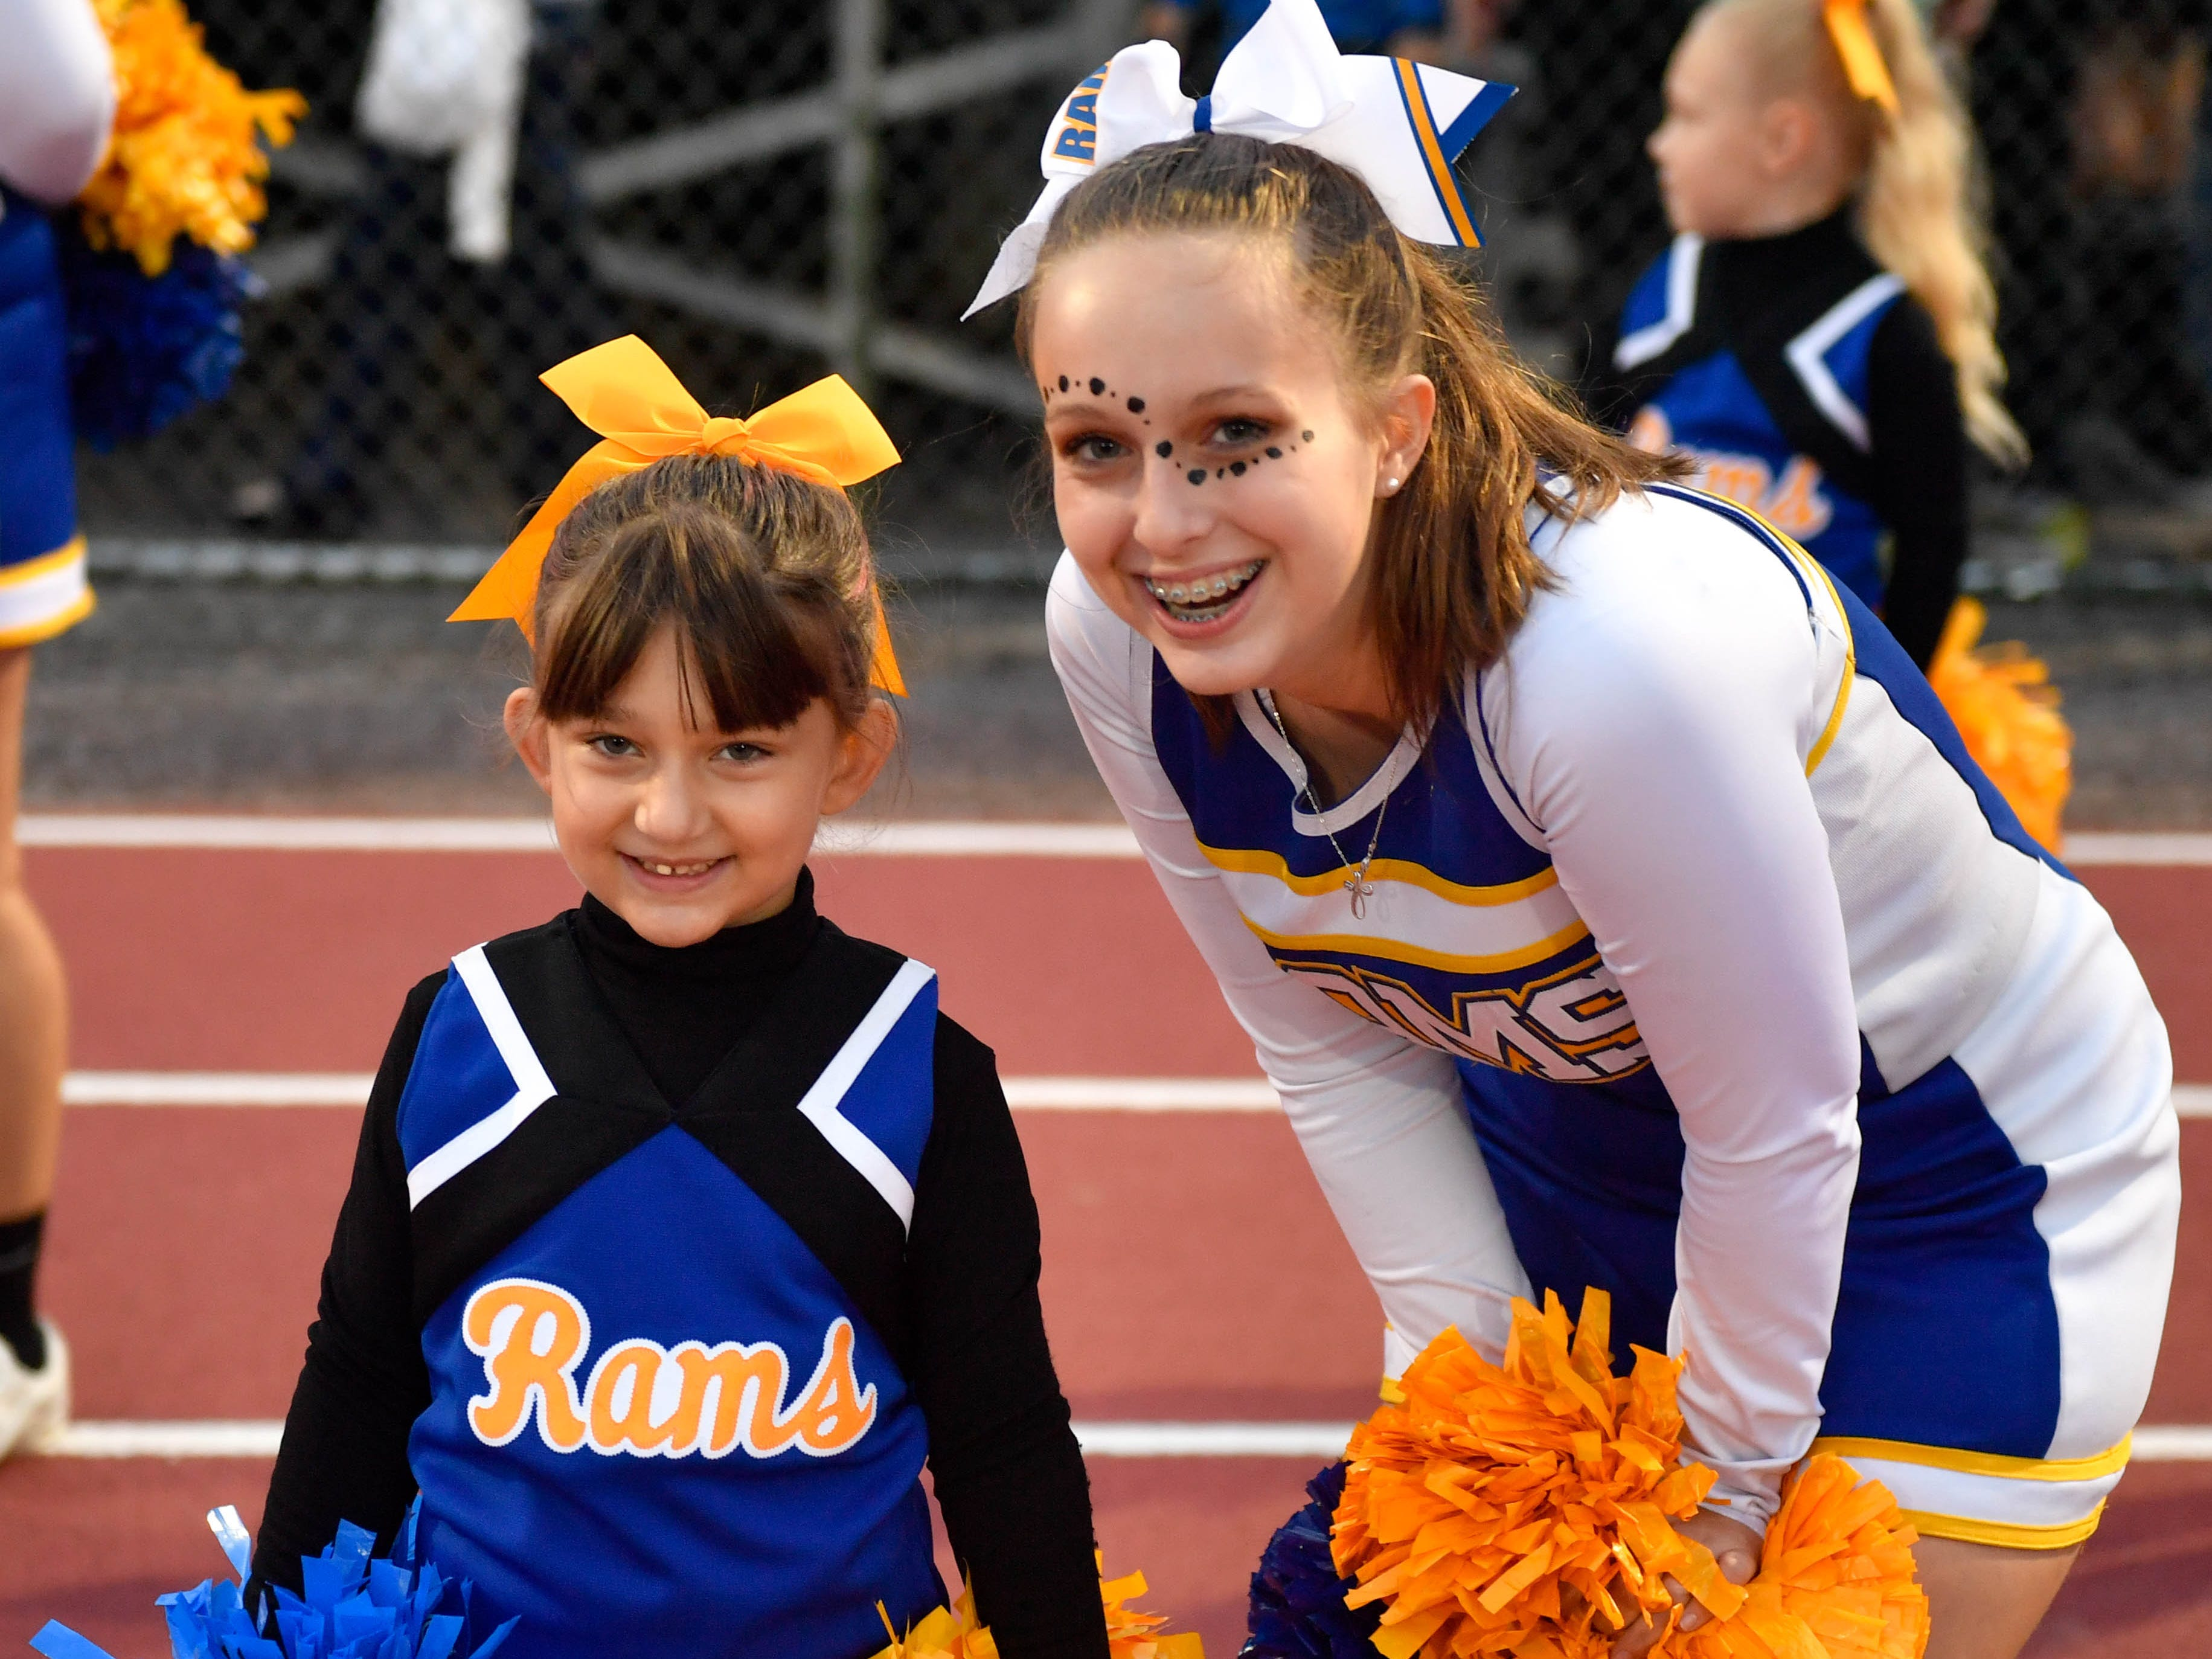 Youth cheerleaders joined high school cheerleaders in hyping up the crowd during the Division II football game between Kennard-Dale and York Suburban, Friday, September 21, 2018. The York Suburban Trojans beat the Kennard-Dale Rams 31-25.